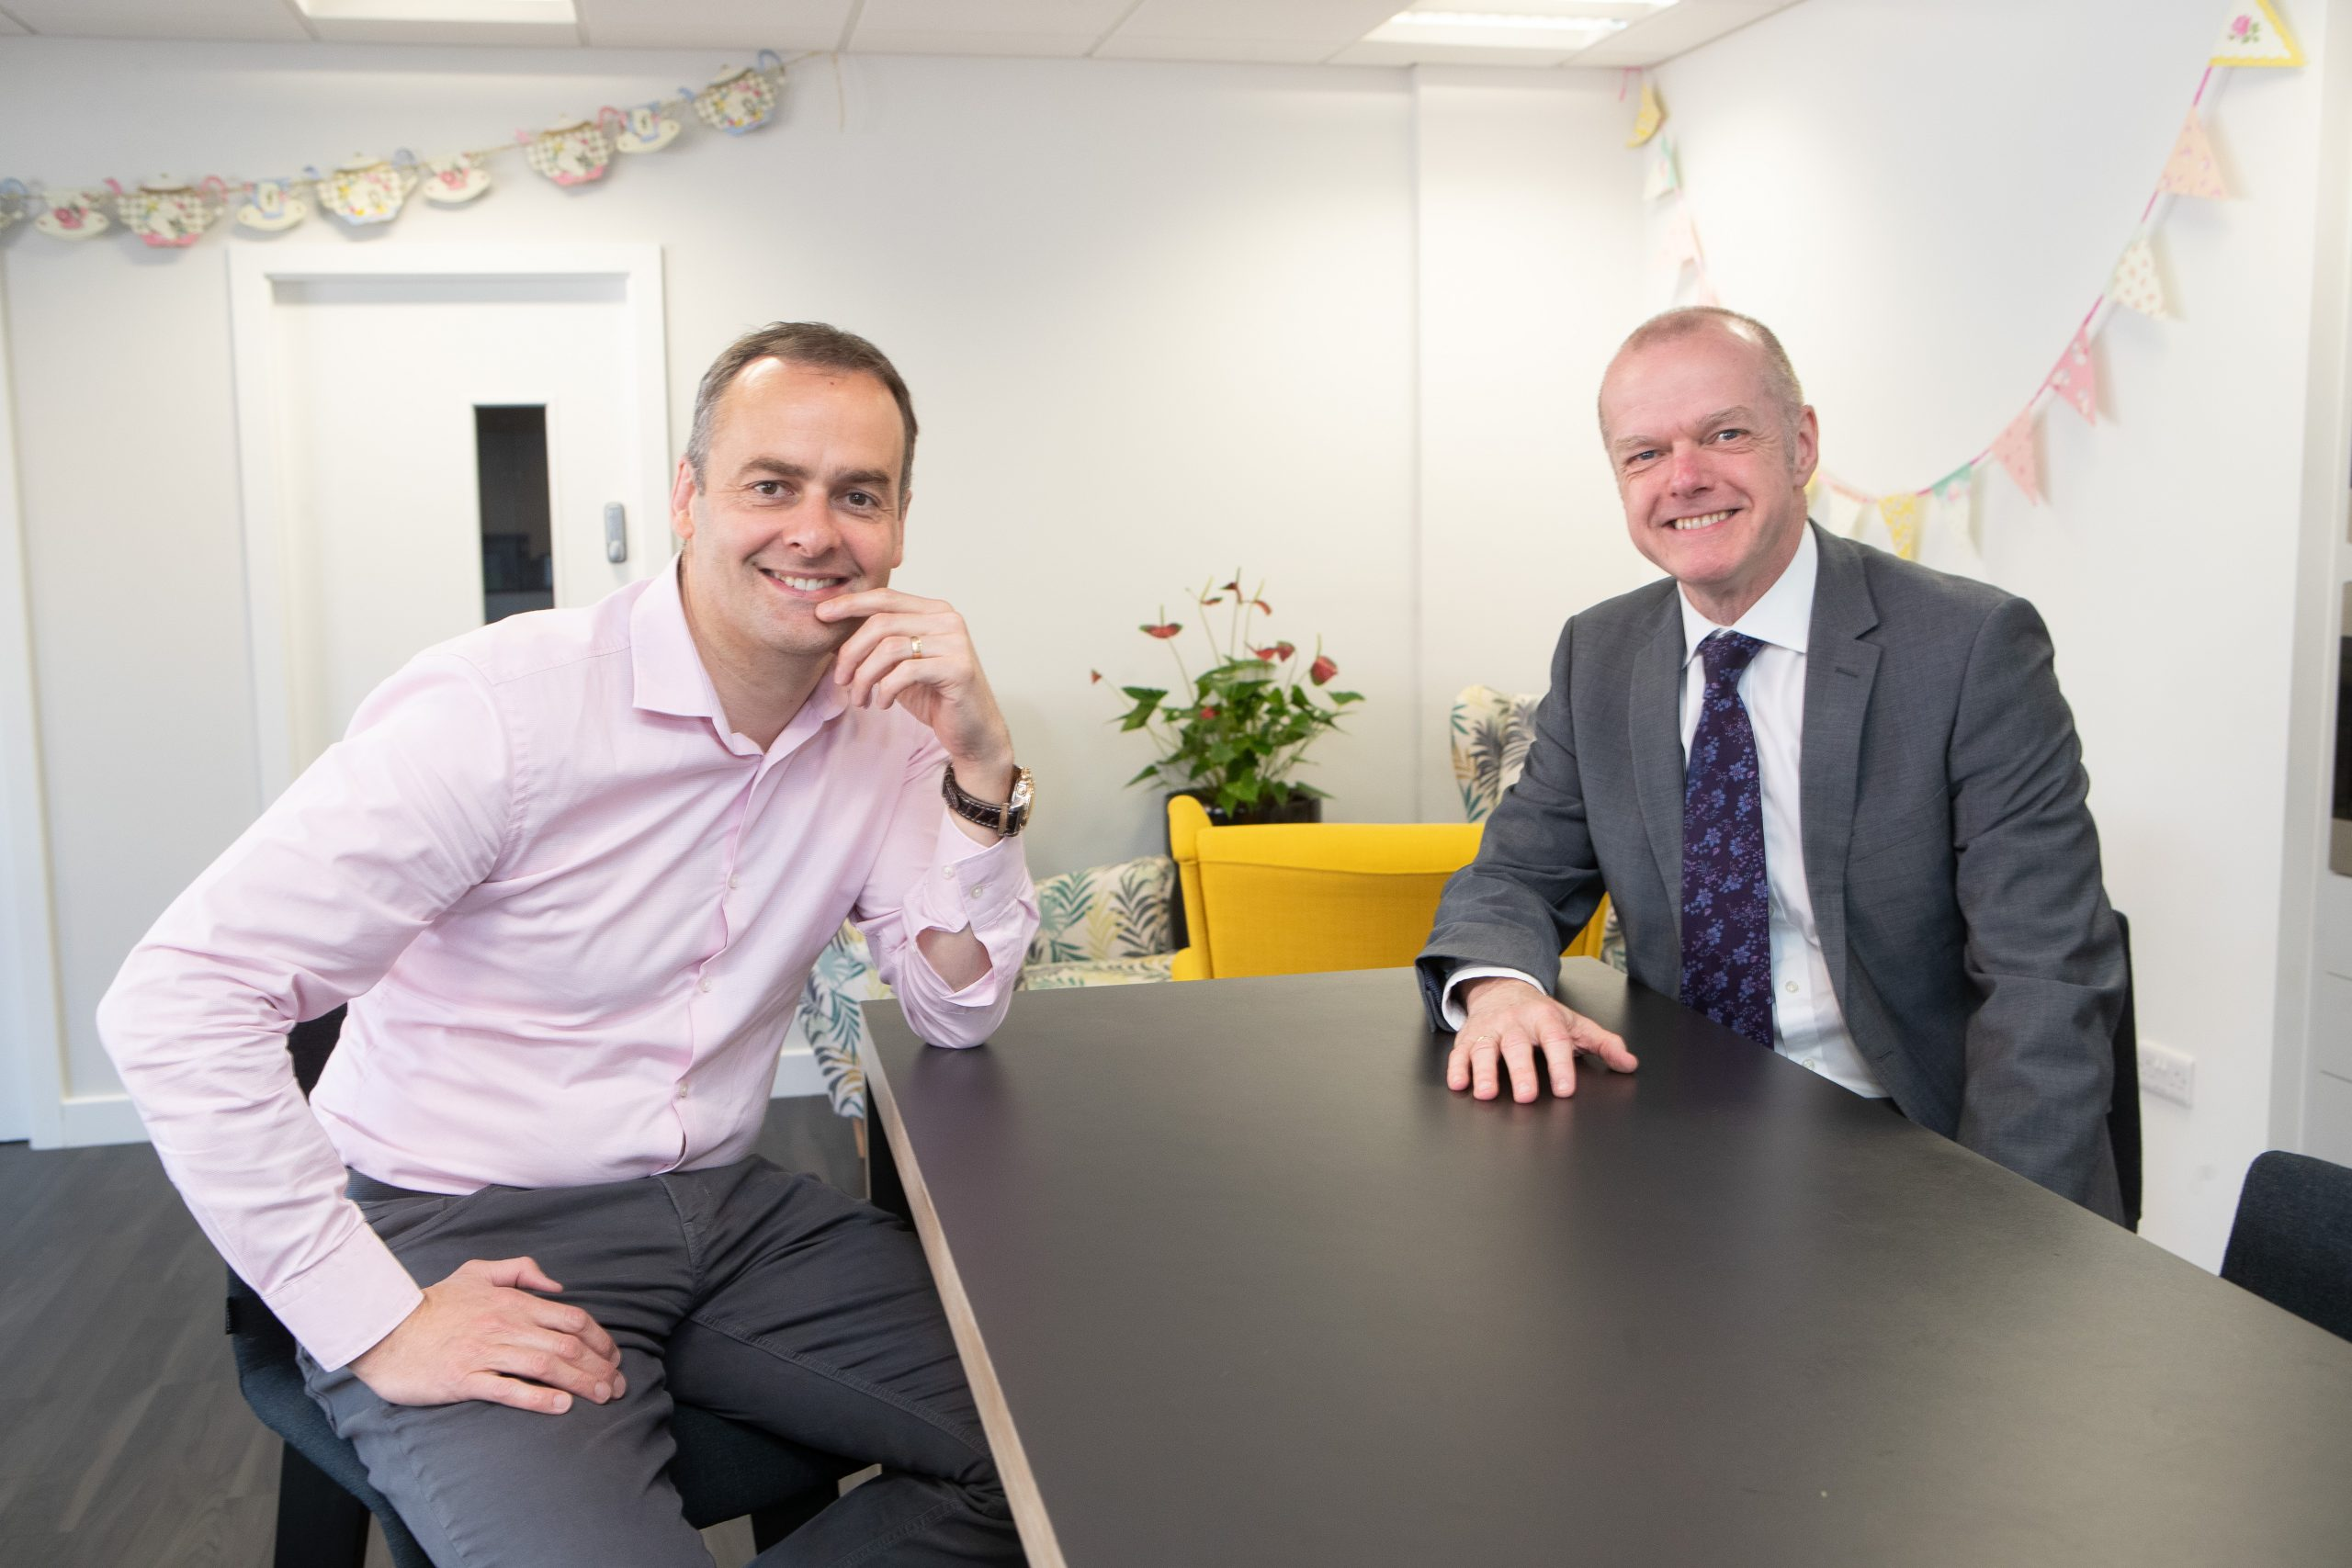 HR and Health & Safety experts expand operations in Wilmslow